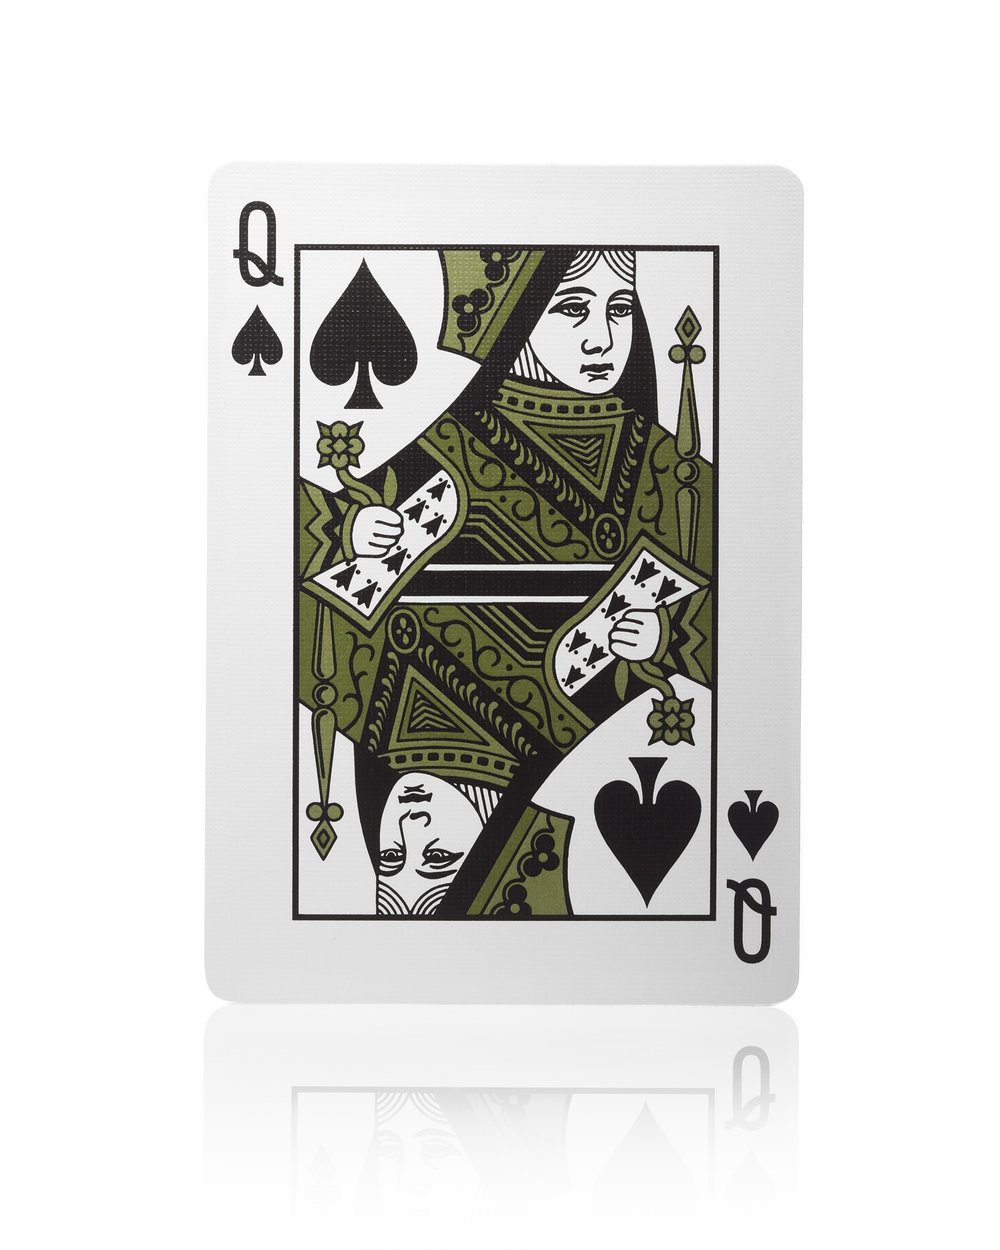 110330-PlayingCards-PlayingCards-002 copy.jpg